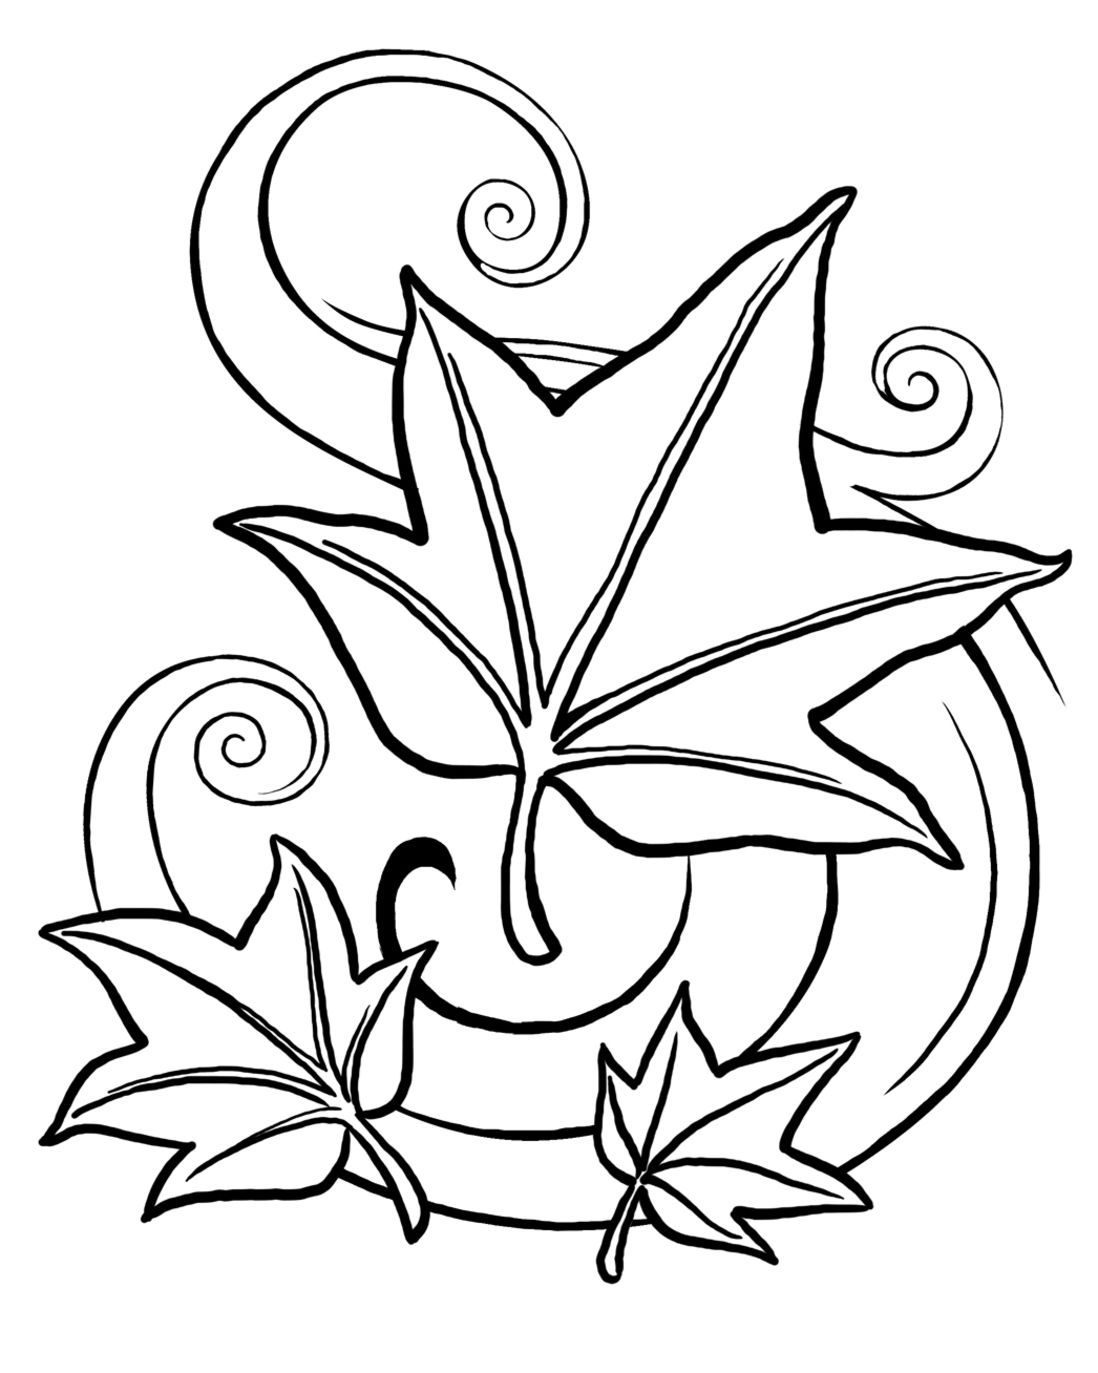 coloring sheet leaves autumn leaves coloring page free printable coloring pages leaves sheet coloring